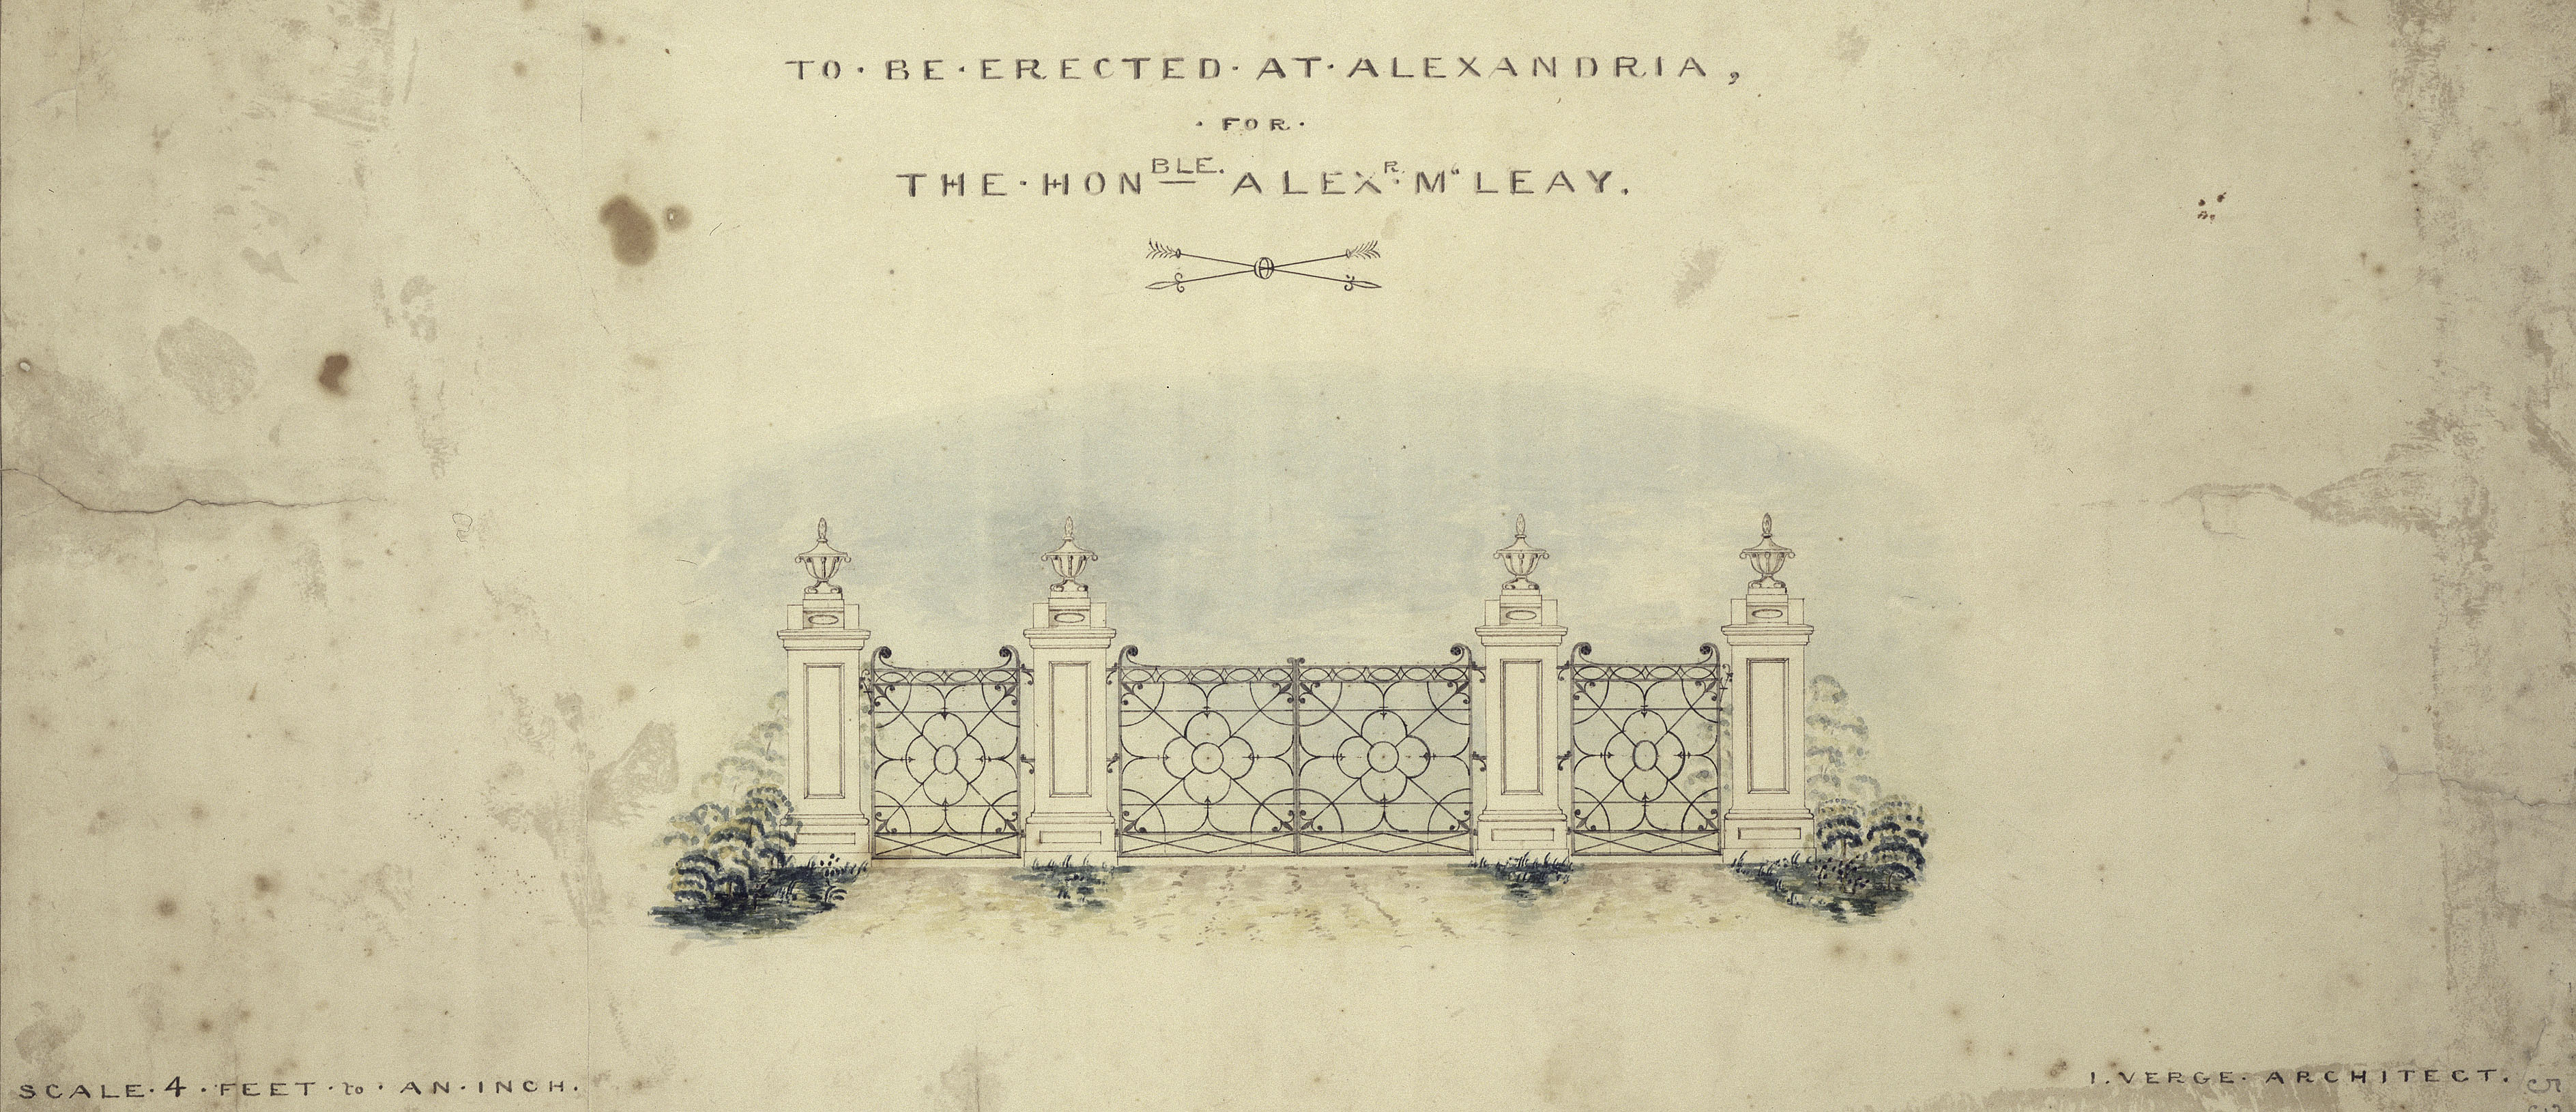 Sketch, to scale, of a gate.